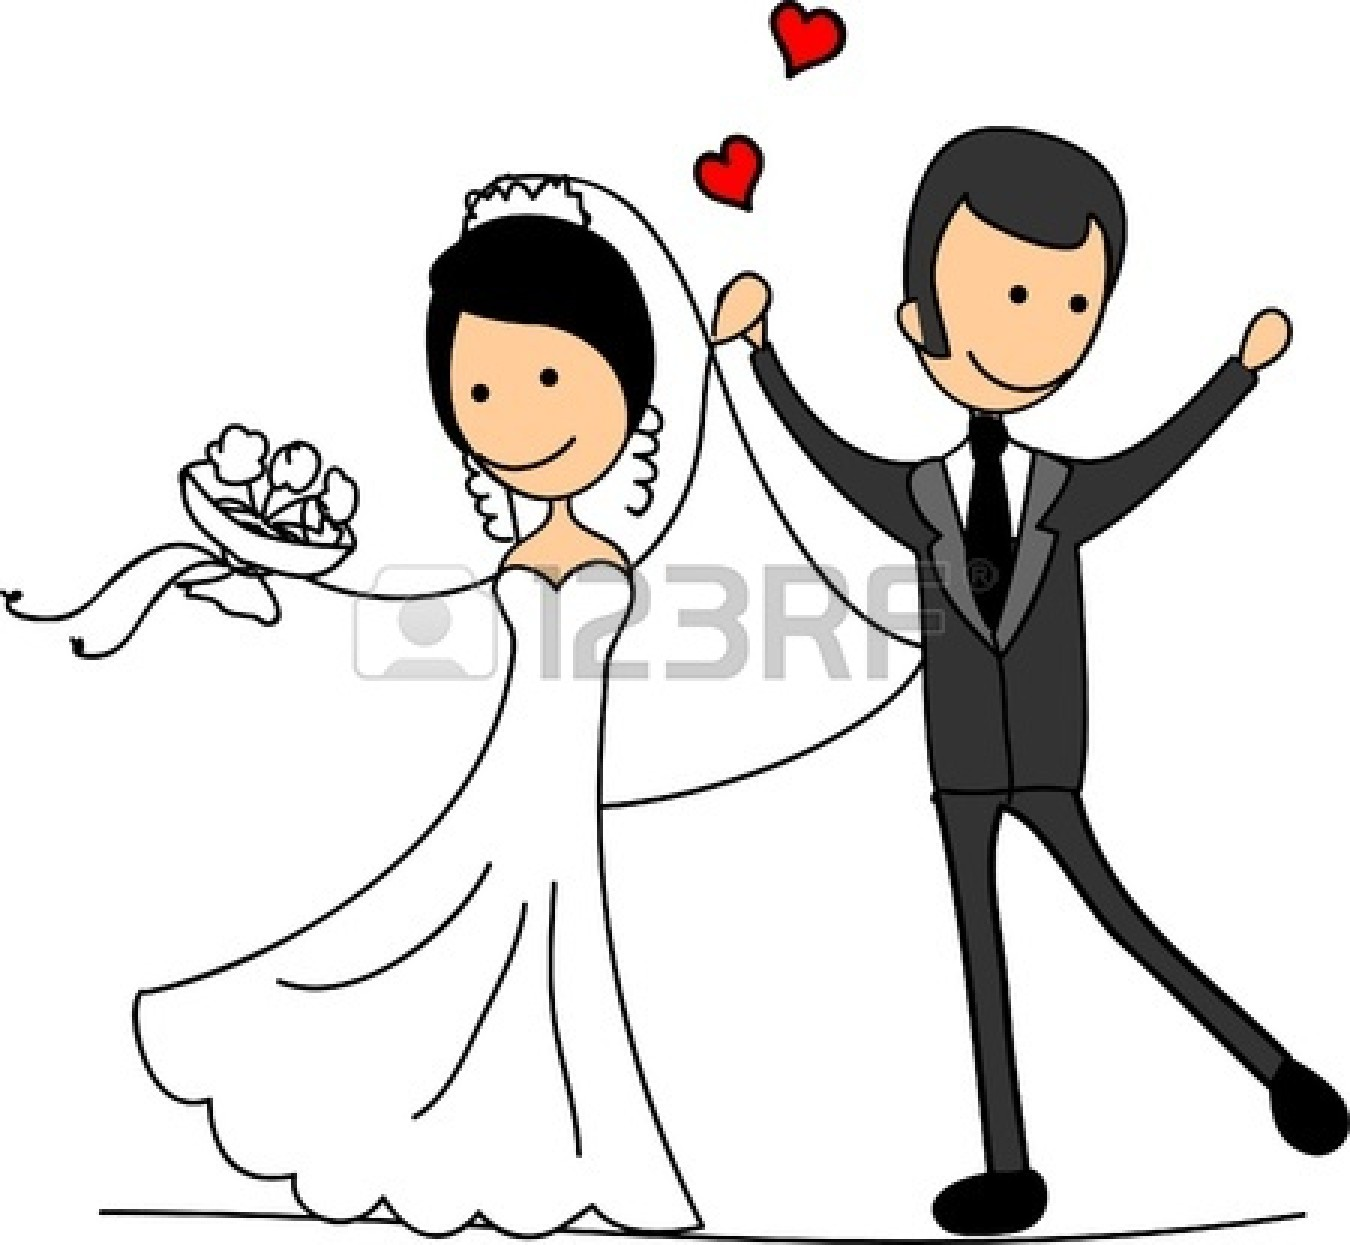 Cartoon bride and groom clipart clipart free library 27+ Bride And Groom Clipart | ClipartLook clipart free library